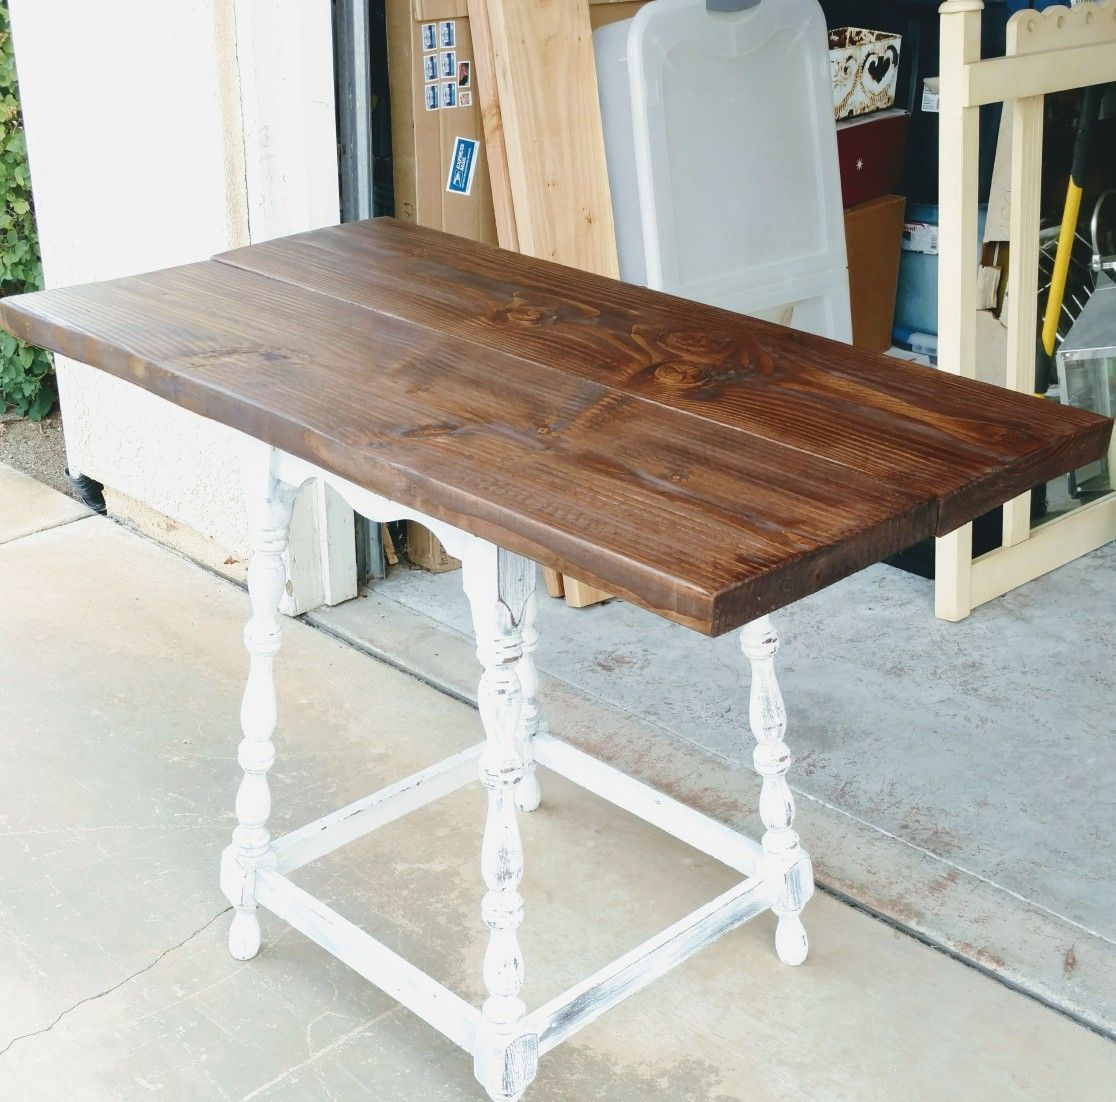 Mini Farmhouse Table For Sale Perfect For A Small Space Would